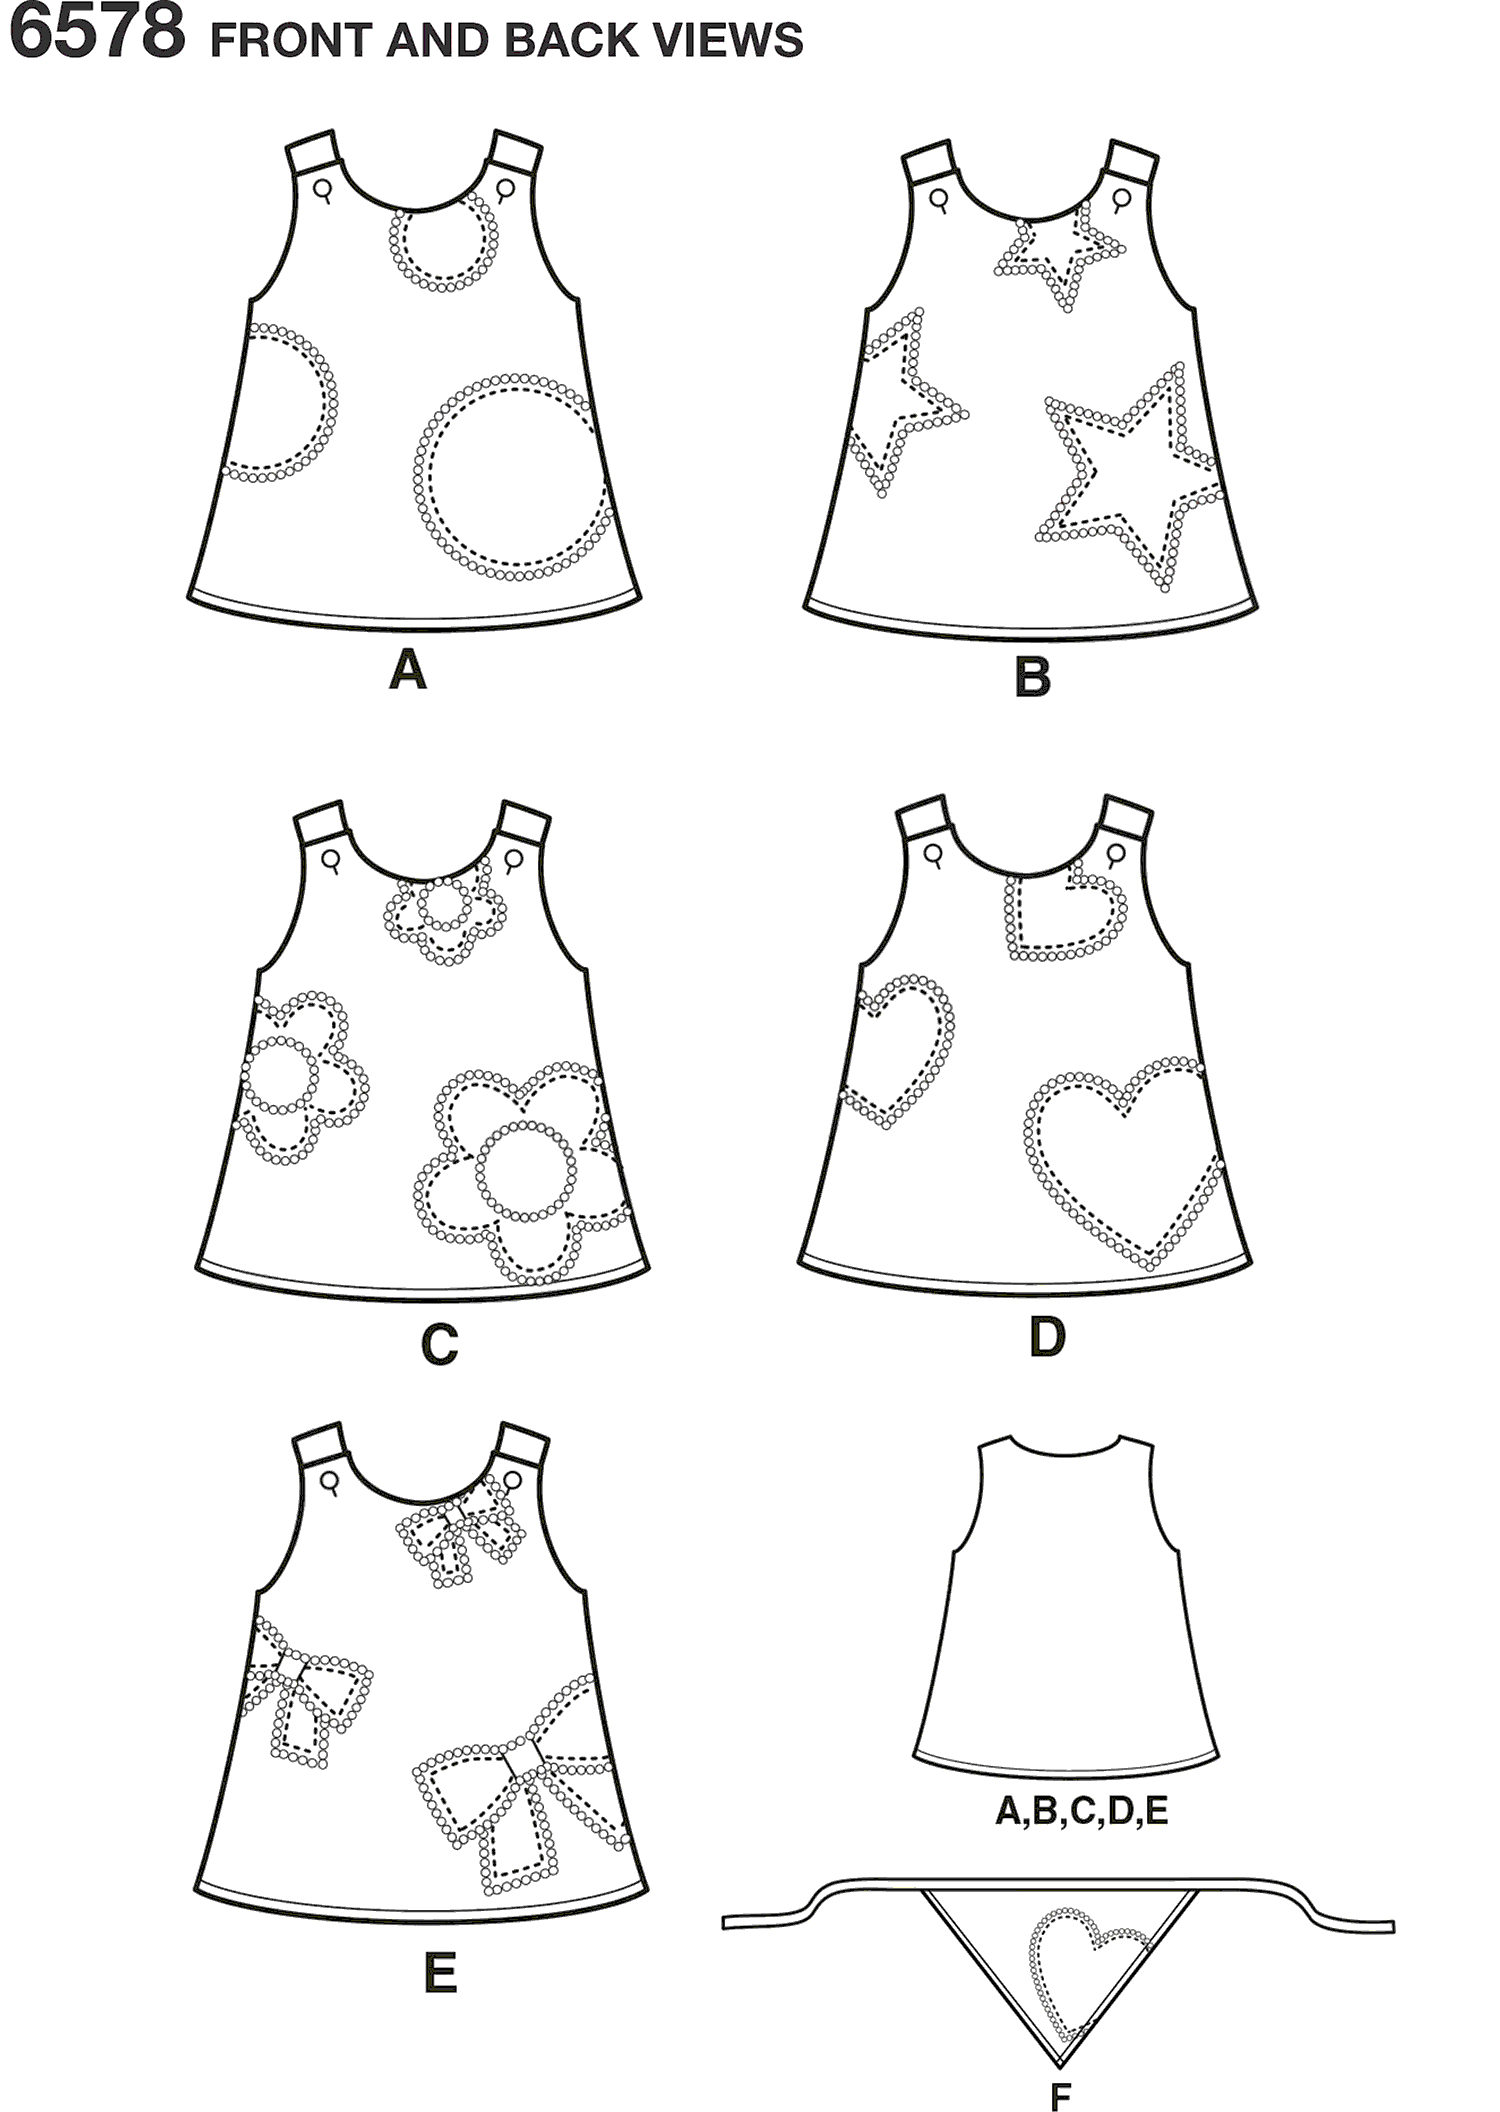 New Look Pattern 6578 Toddler Dresses Line Art From Patternsandplains.com